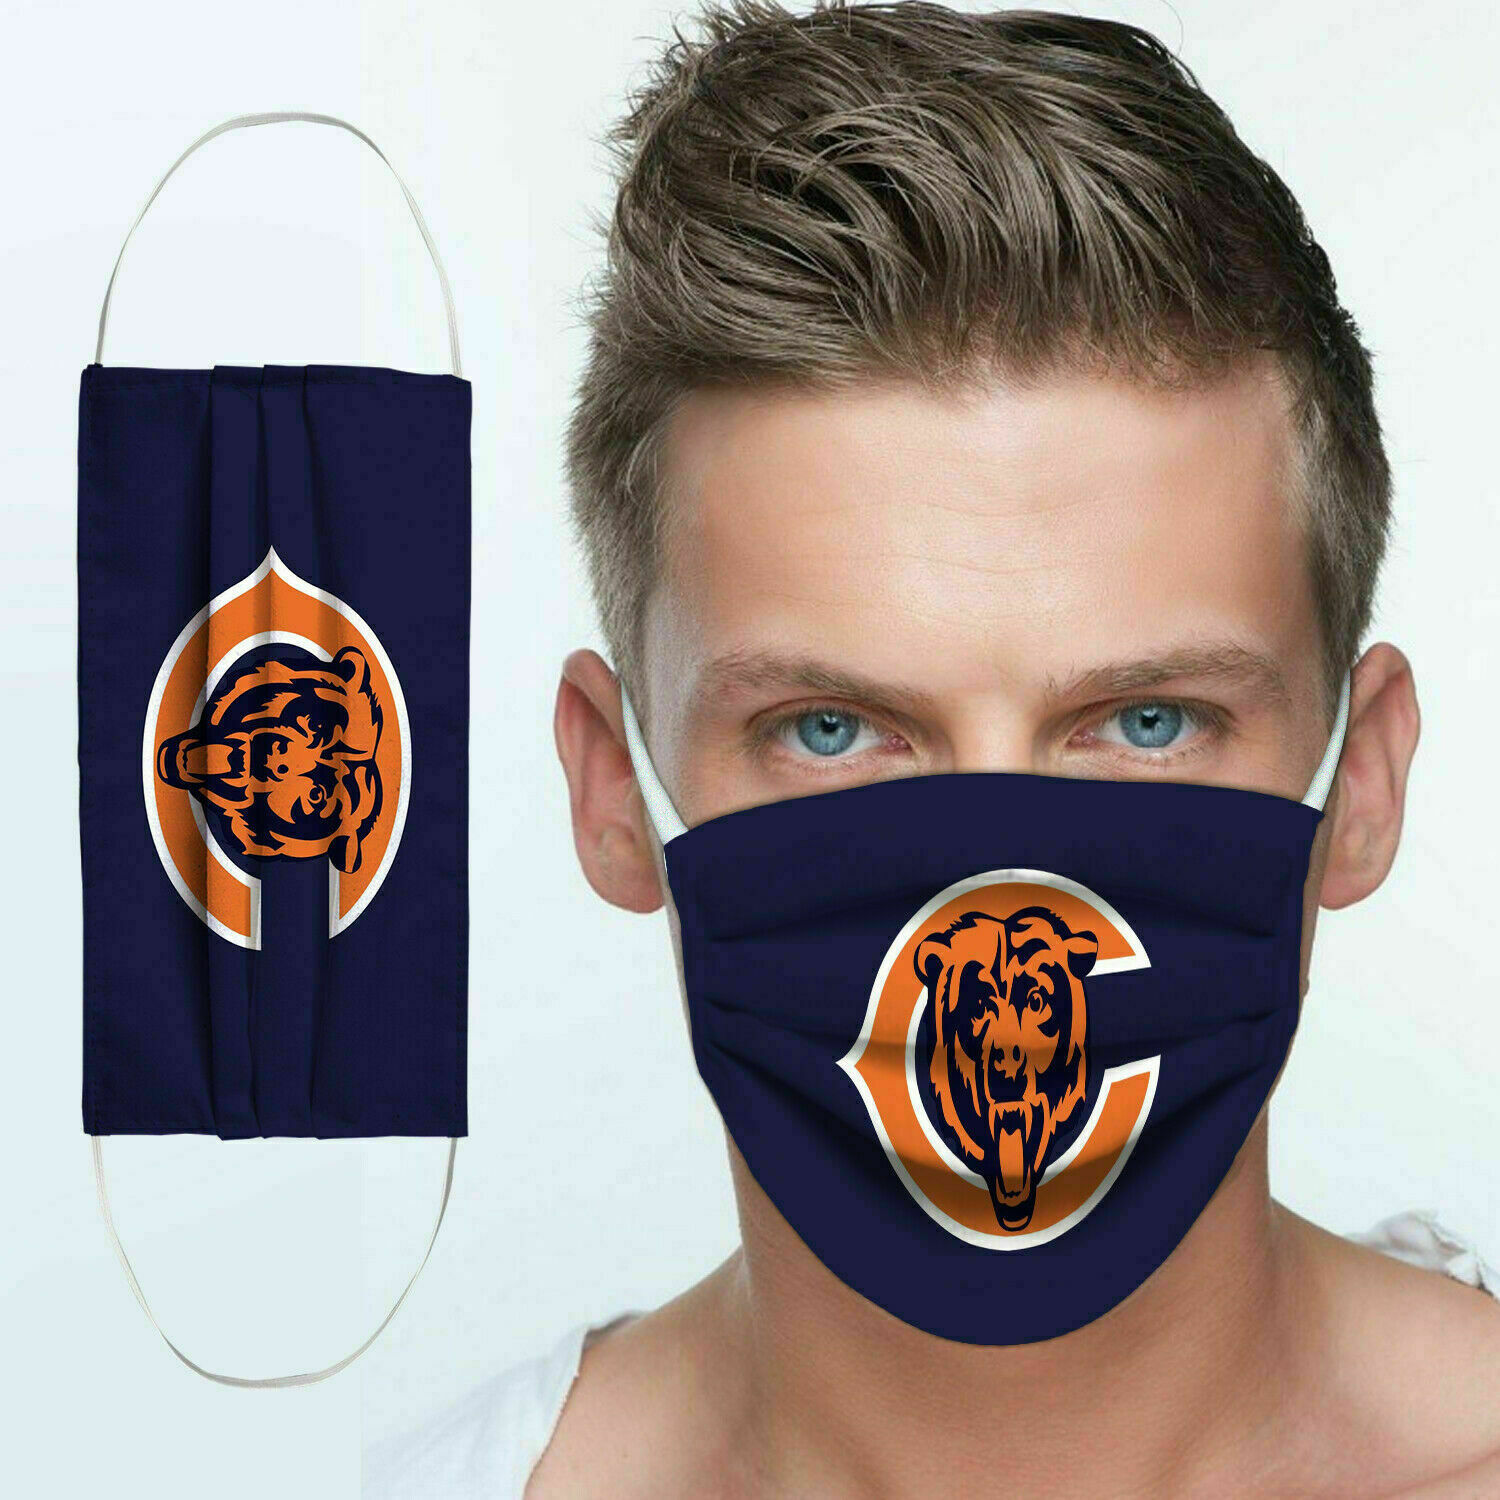 National football league chicago bears team cotton face mask 4